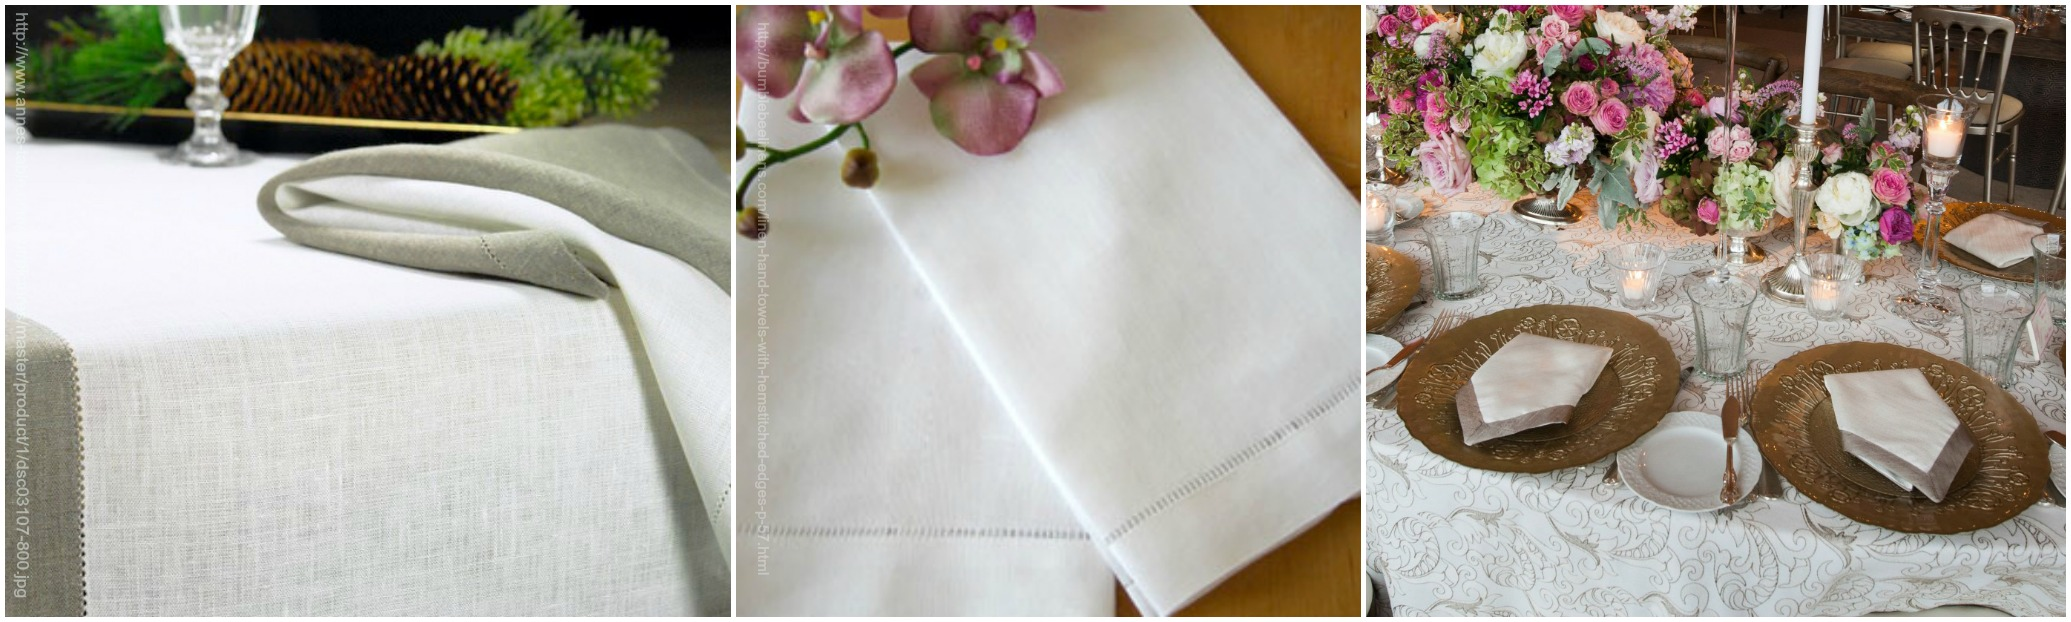 Crisp white linens help brighten the season says HMR Designs